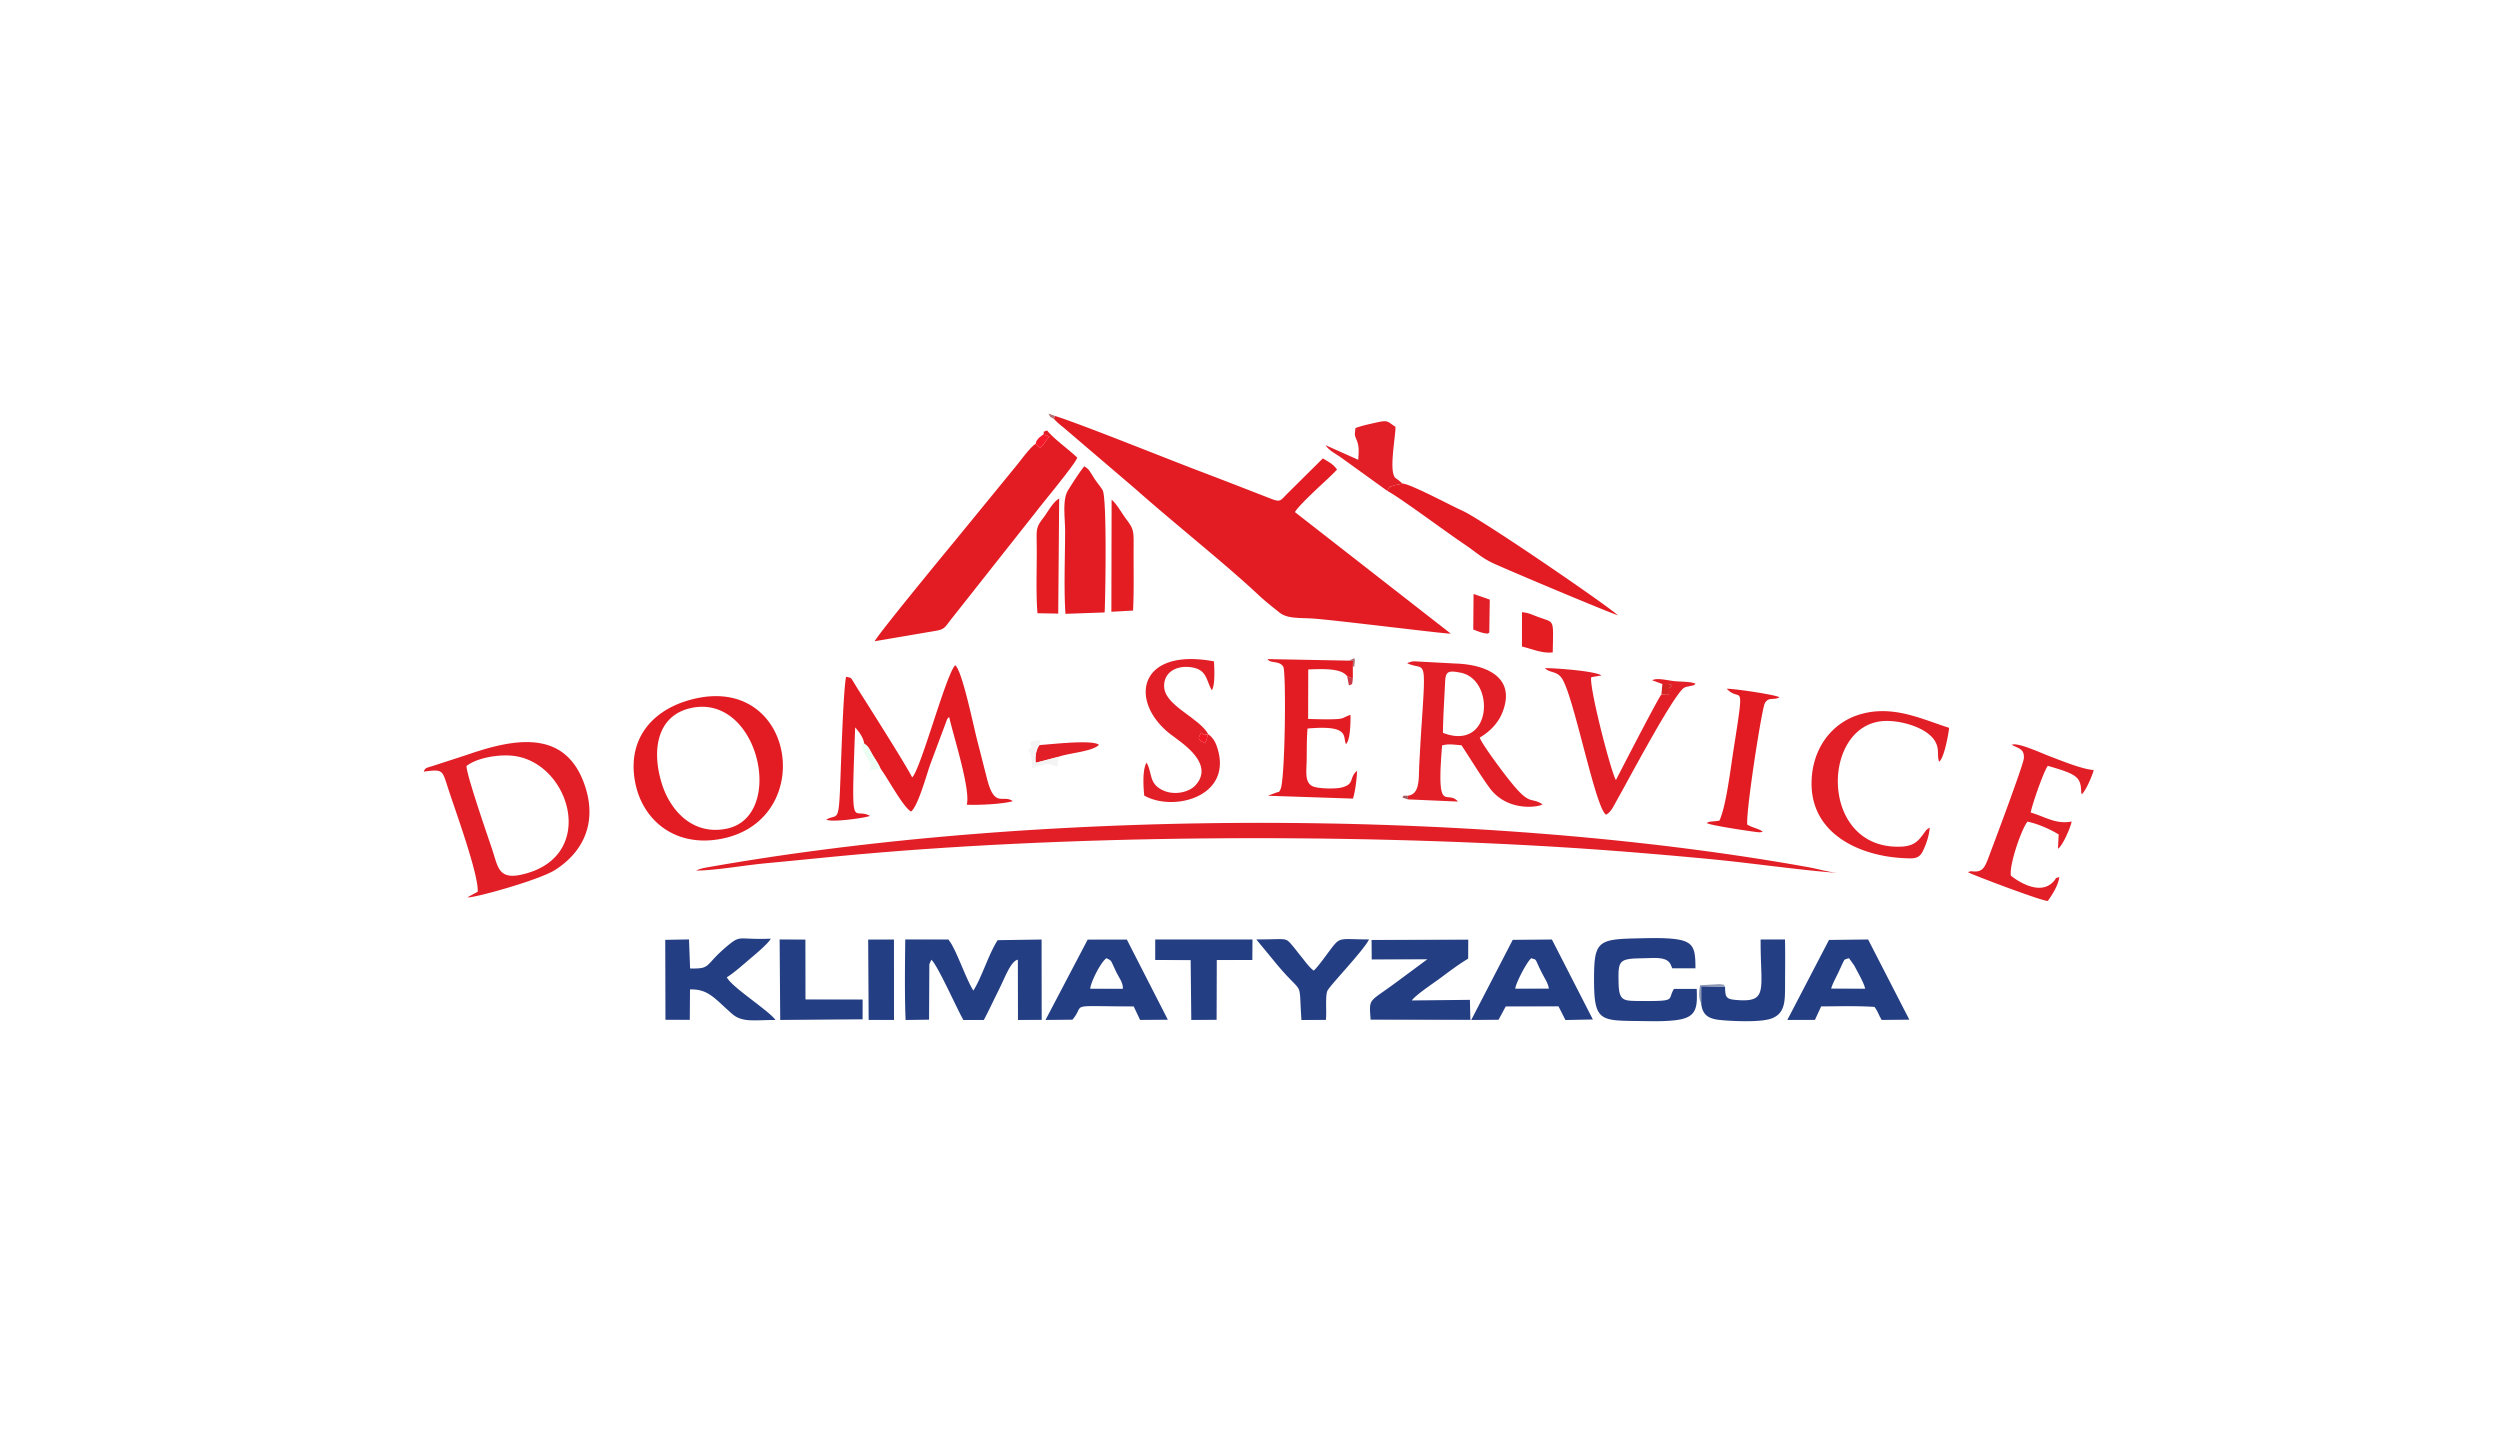 Dom-Service